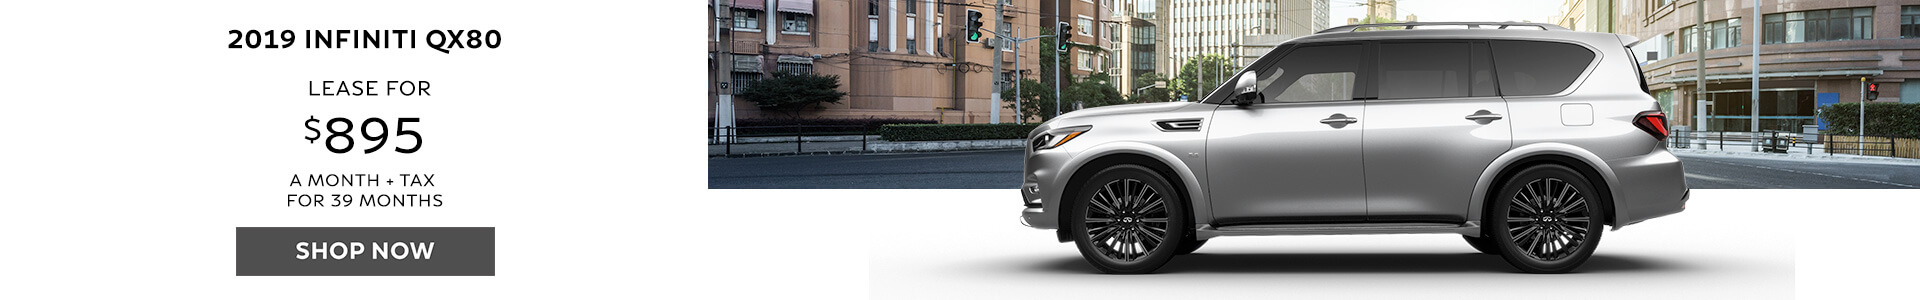 QX80 - Lease for $895